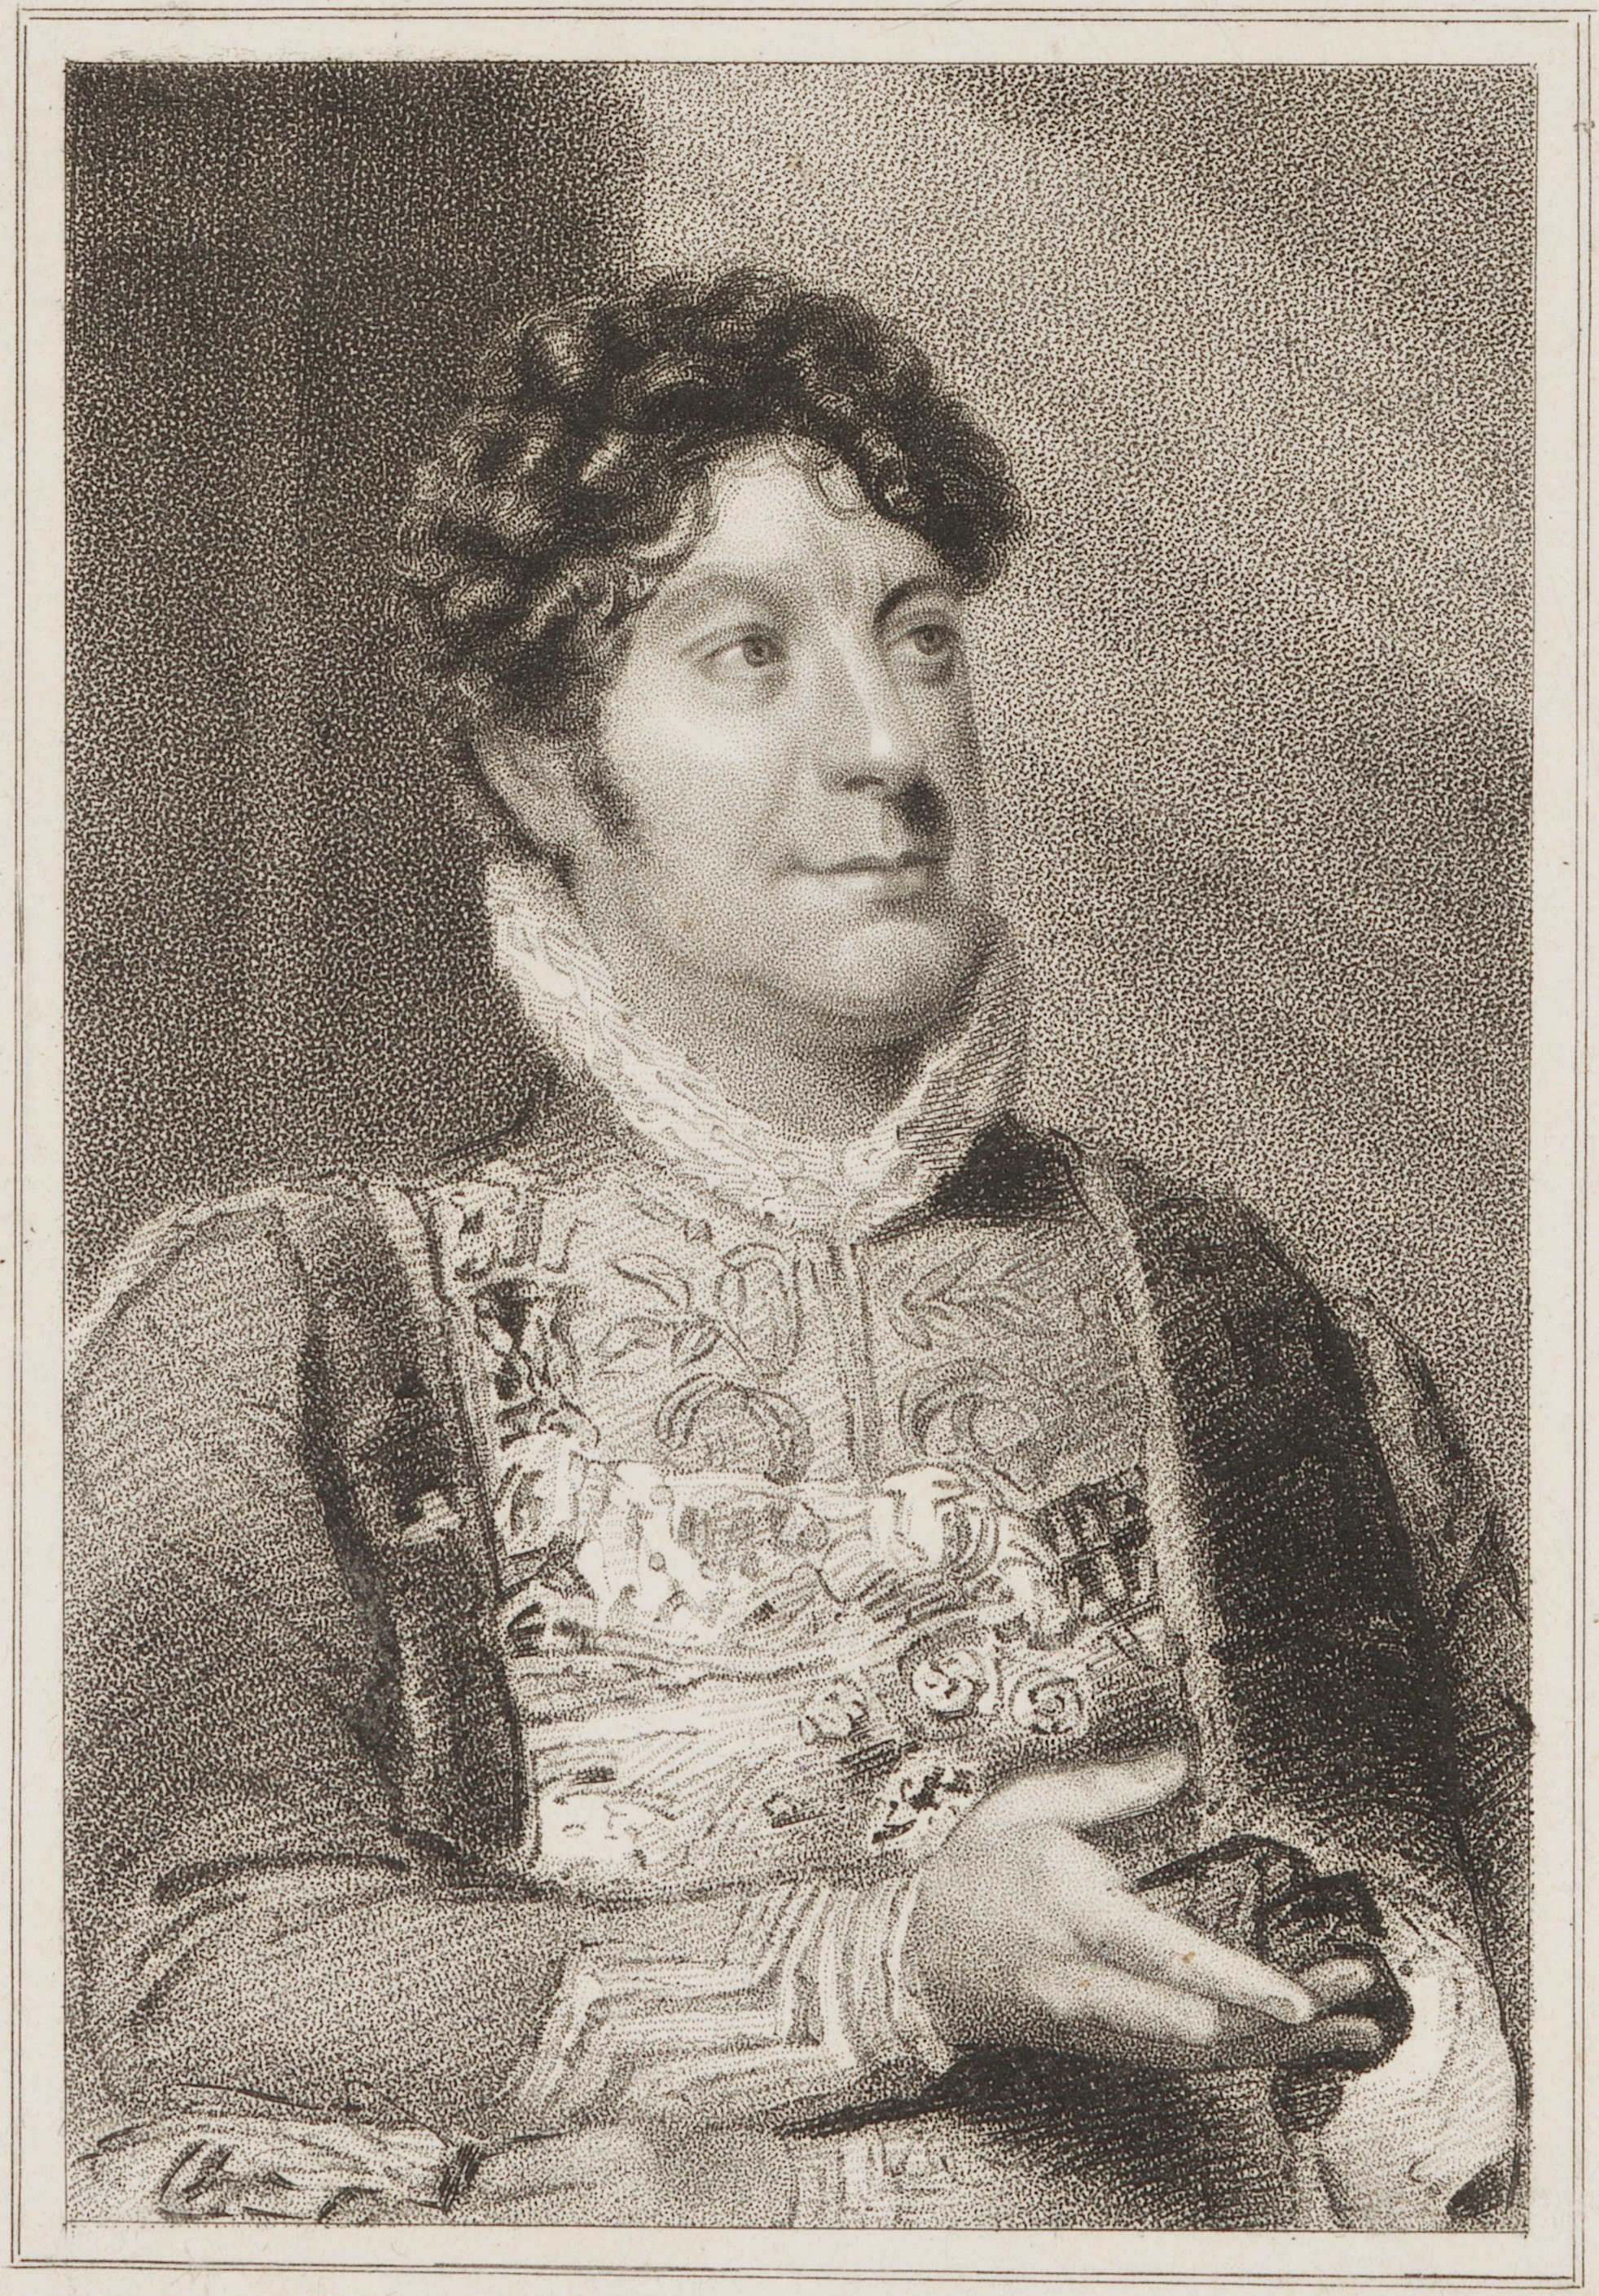 Charles Farley as Cloten in 'Cymbeline' by Thomas Woolnoth, published by Simpkin and Marshall, after Thomas Charles Wageman, stipple engraving, published 1821. NPG D38673. © National Portrait Gallery, London